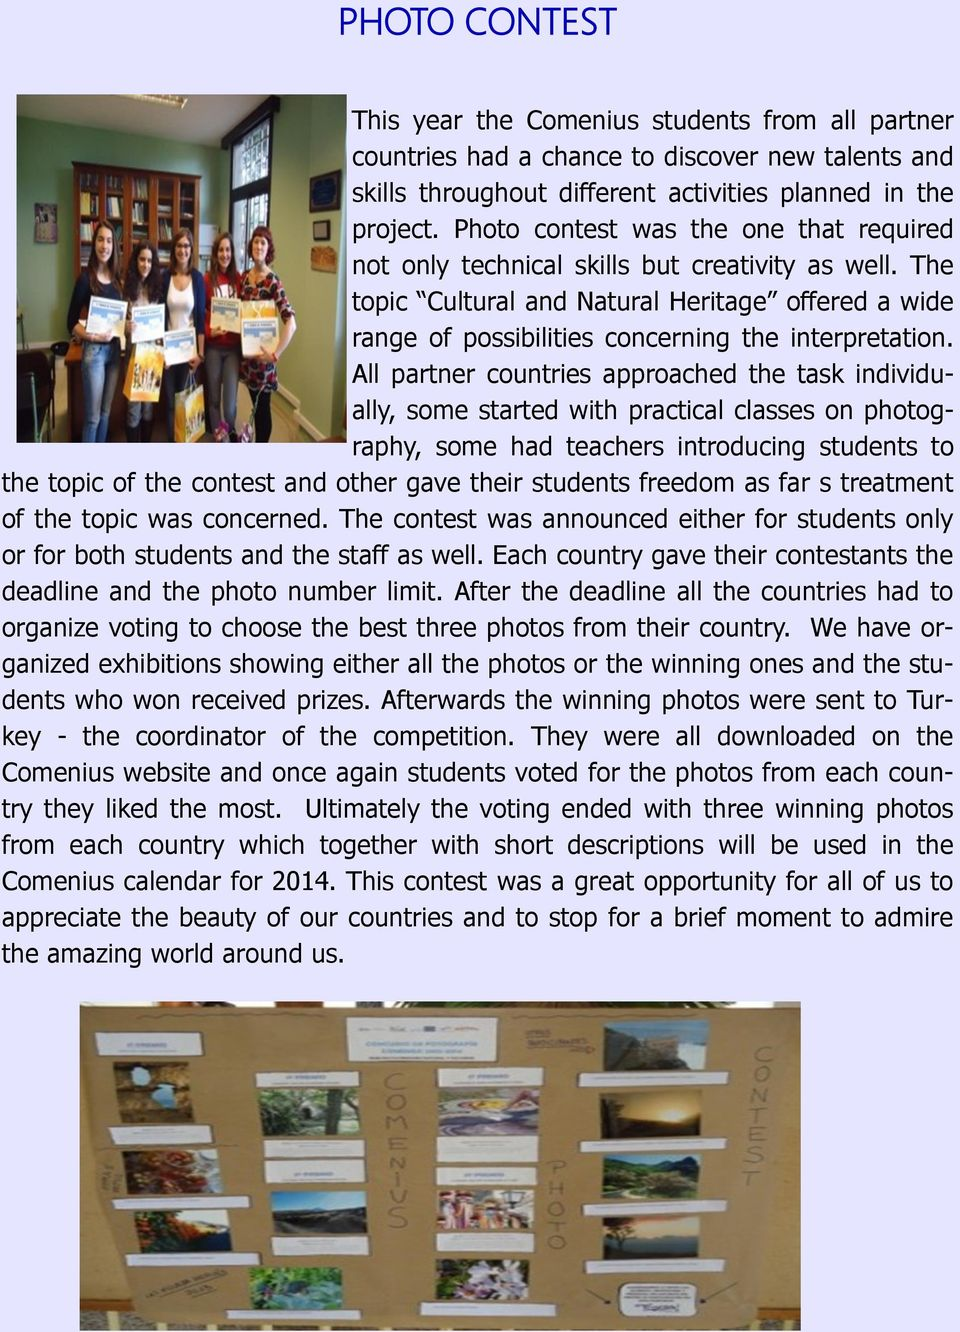 All partner countries approached the task individually, some started with practical classes on photography, some had teachers introducing students to the topic of the contest and other gave their